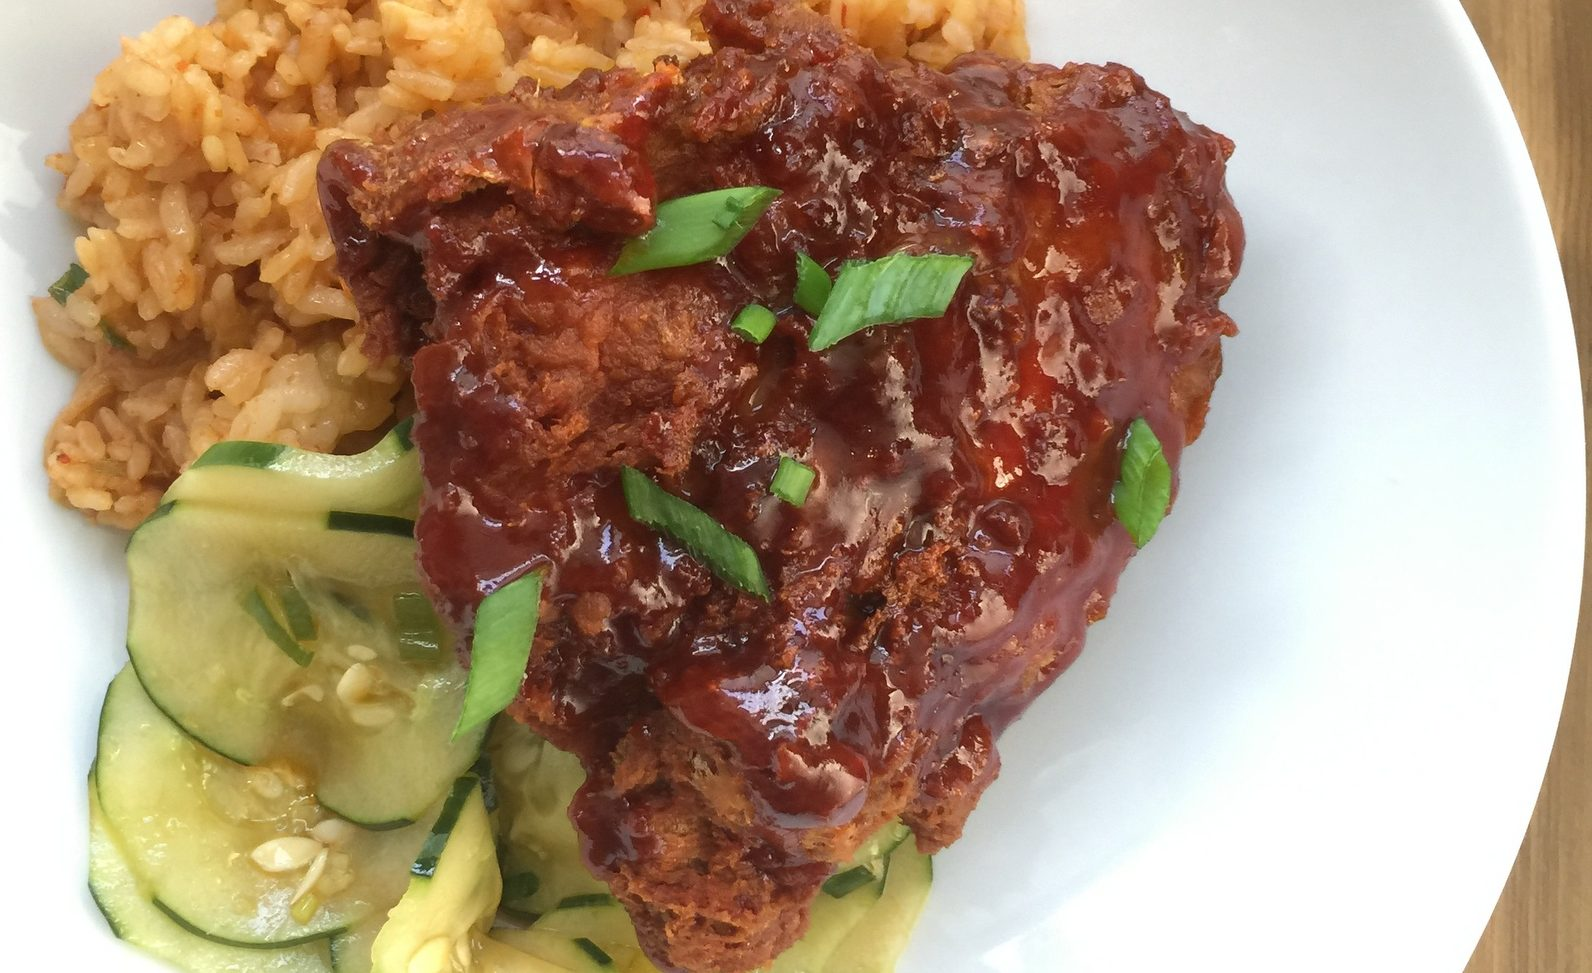 The Korean fried chicken from The Dapper Goose was a favorite. (Andrew Galarneau/Buffalo News)